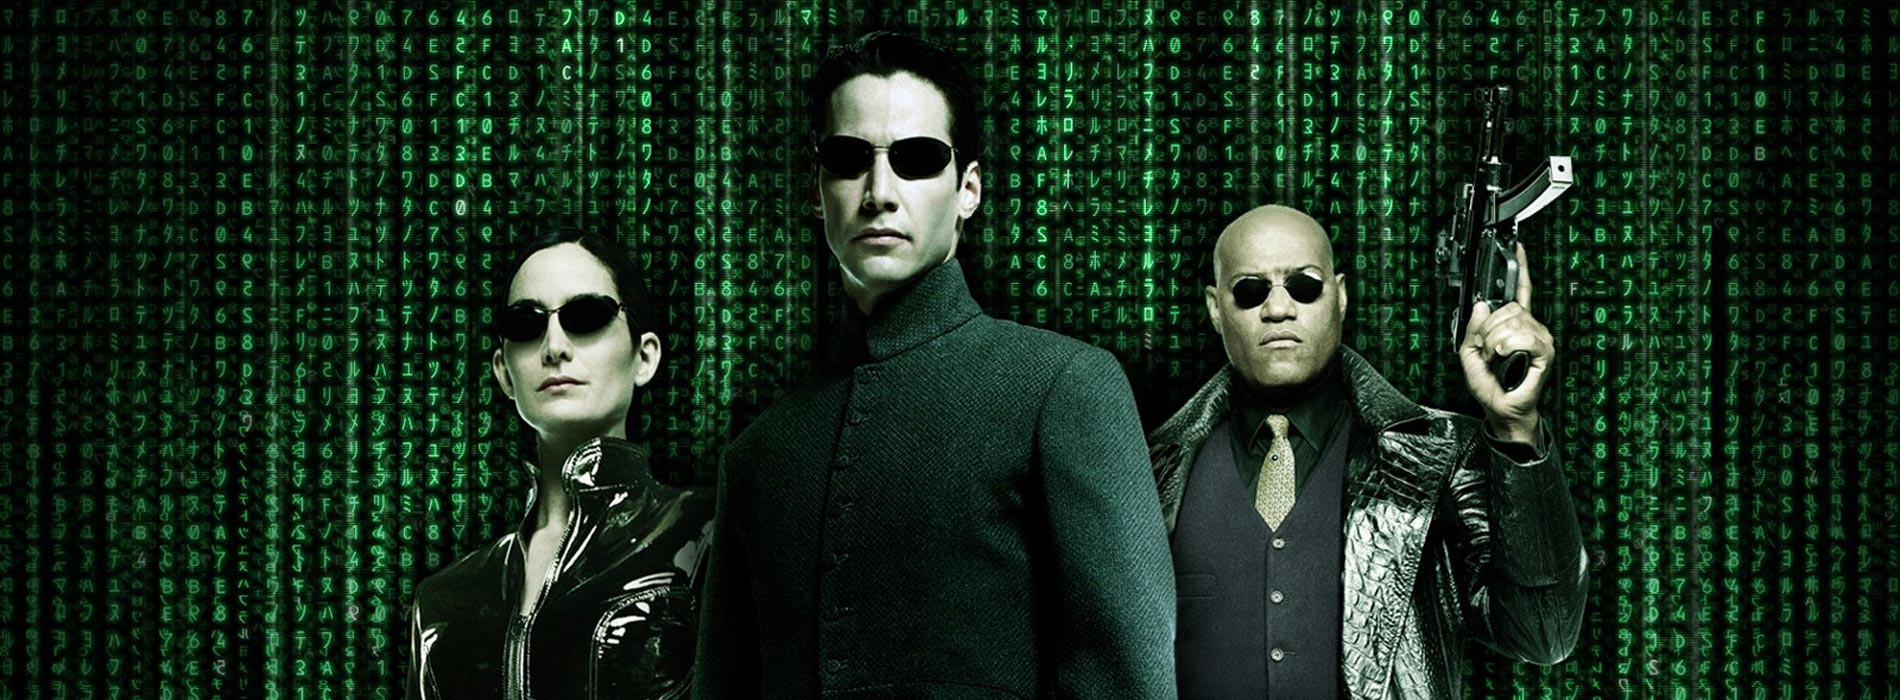 matrix-menorjpg